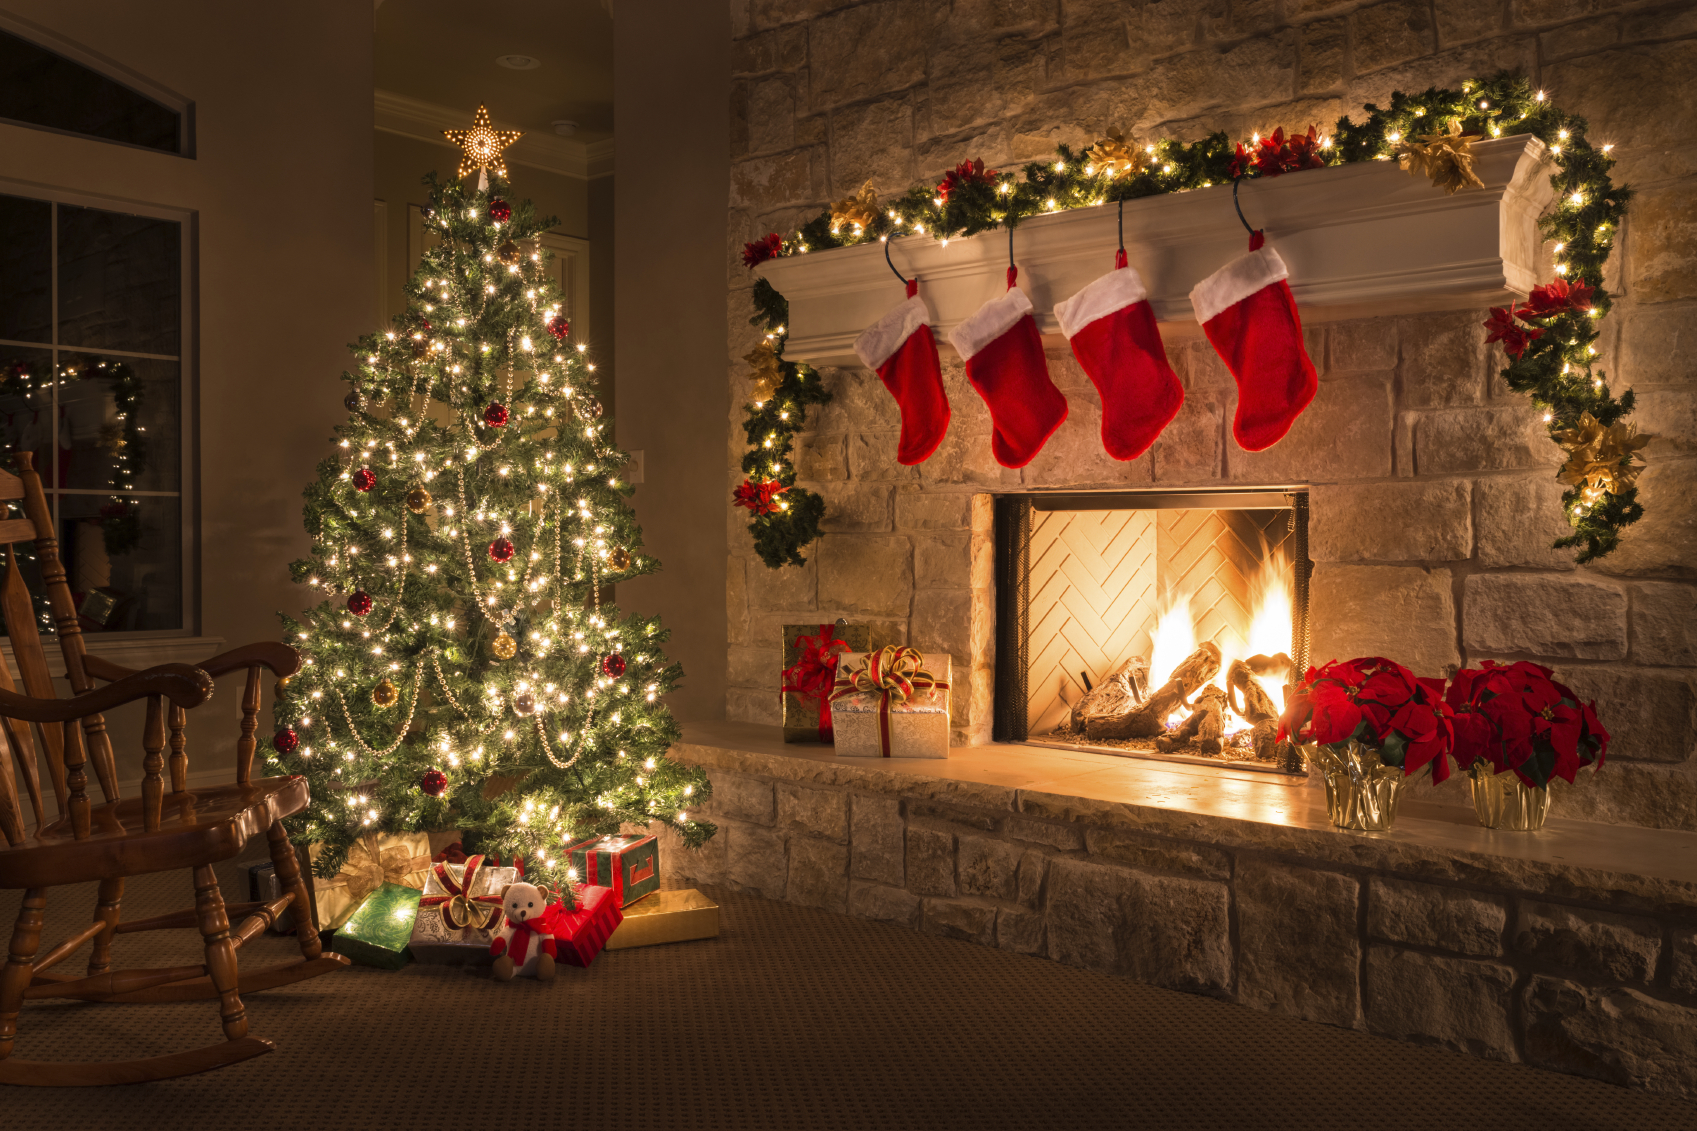 Fireplace-and-tree-iStock_000073654441_Medium.jpg